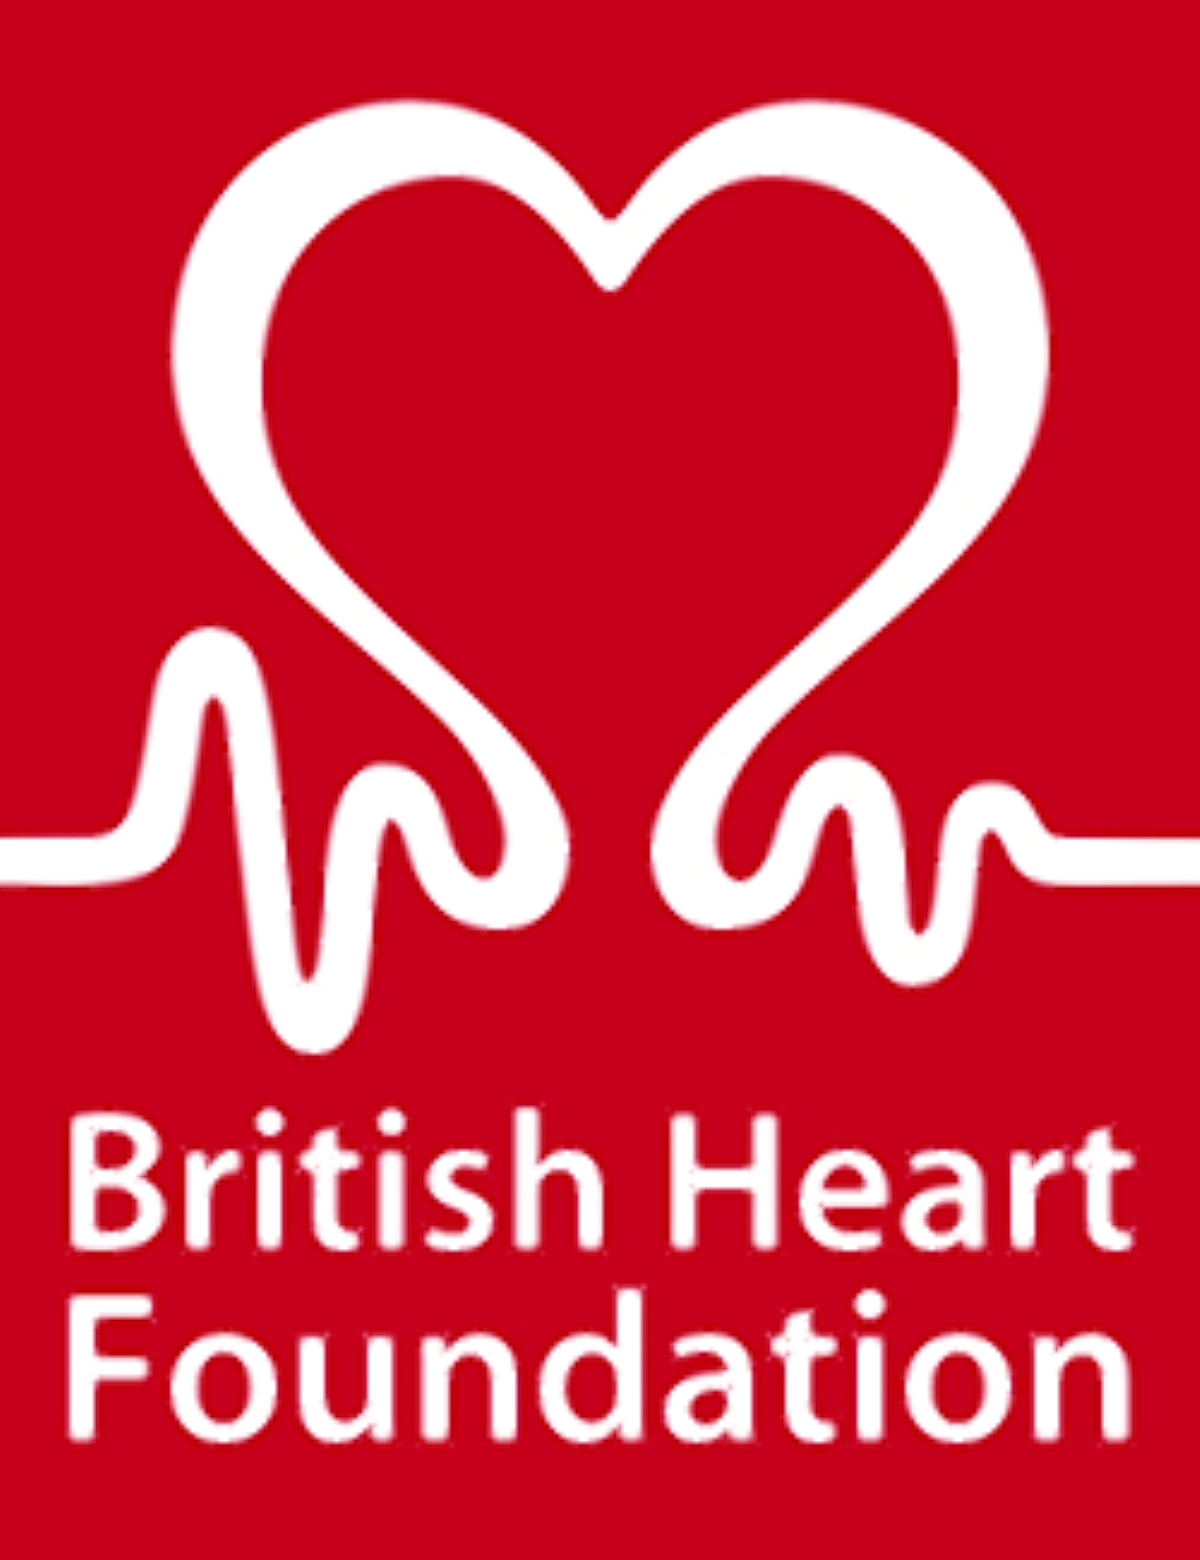 CHARITY FUNDS: The British Heart Foundation will benefit from a fundraising night in Darlington next month